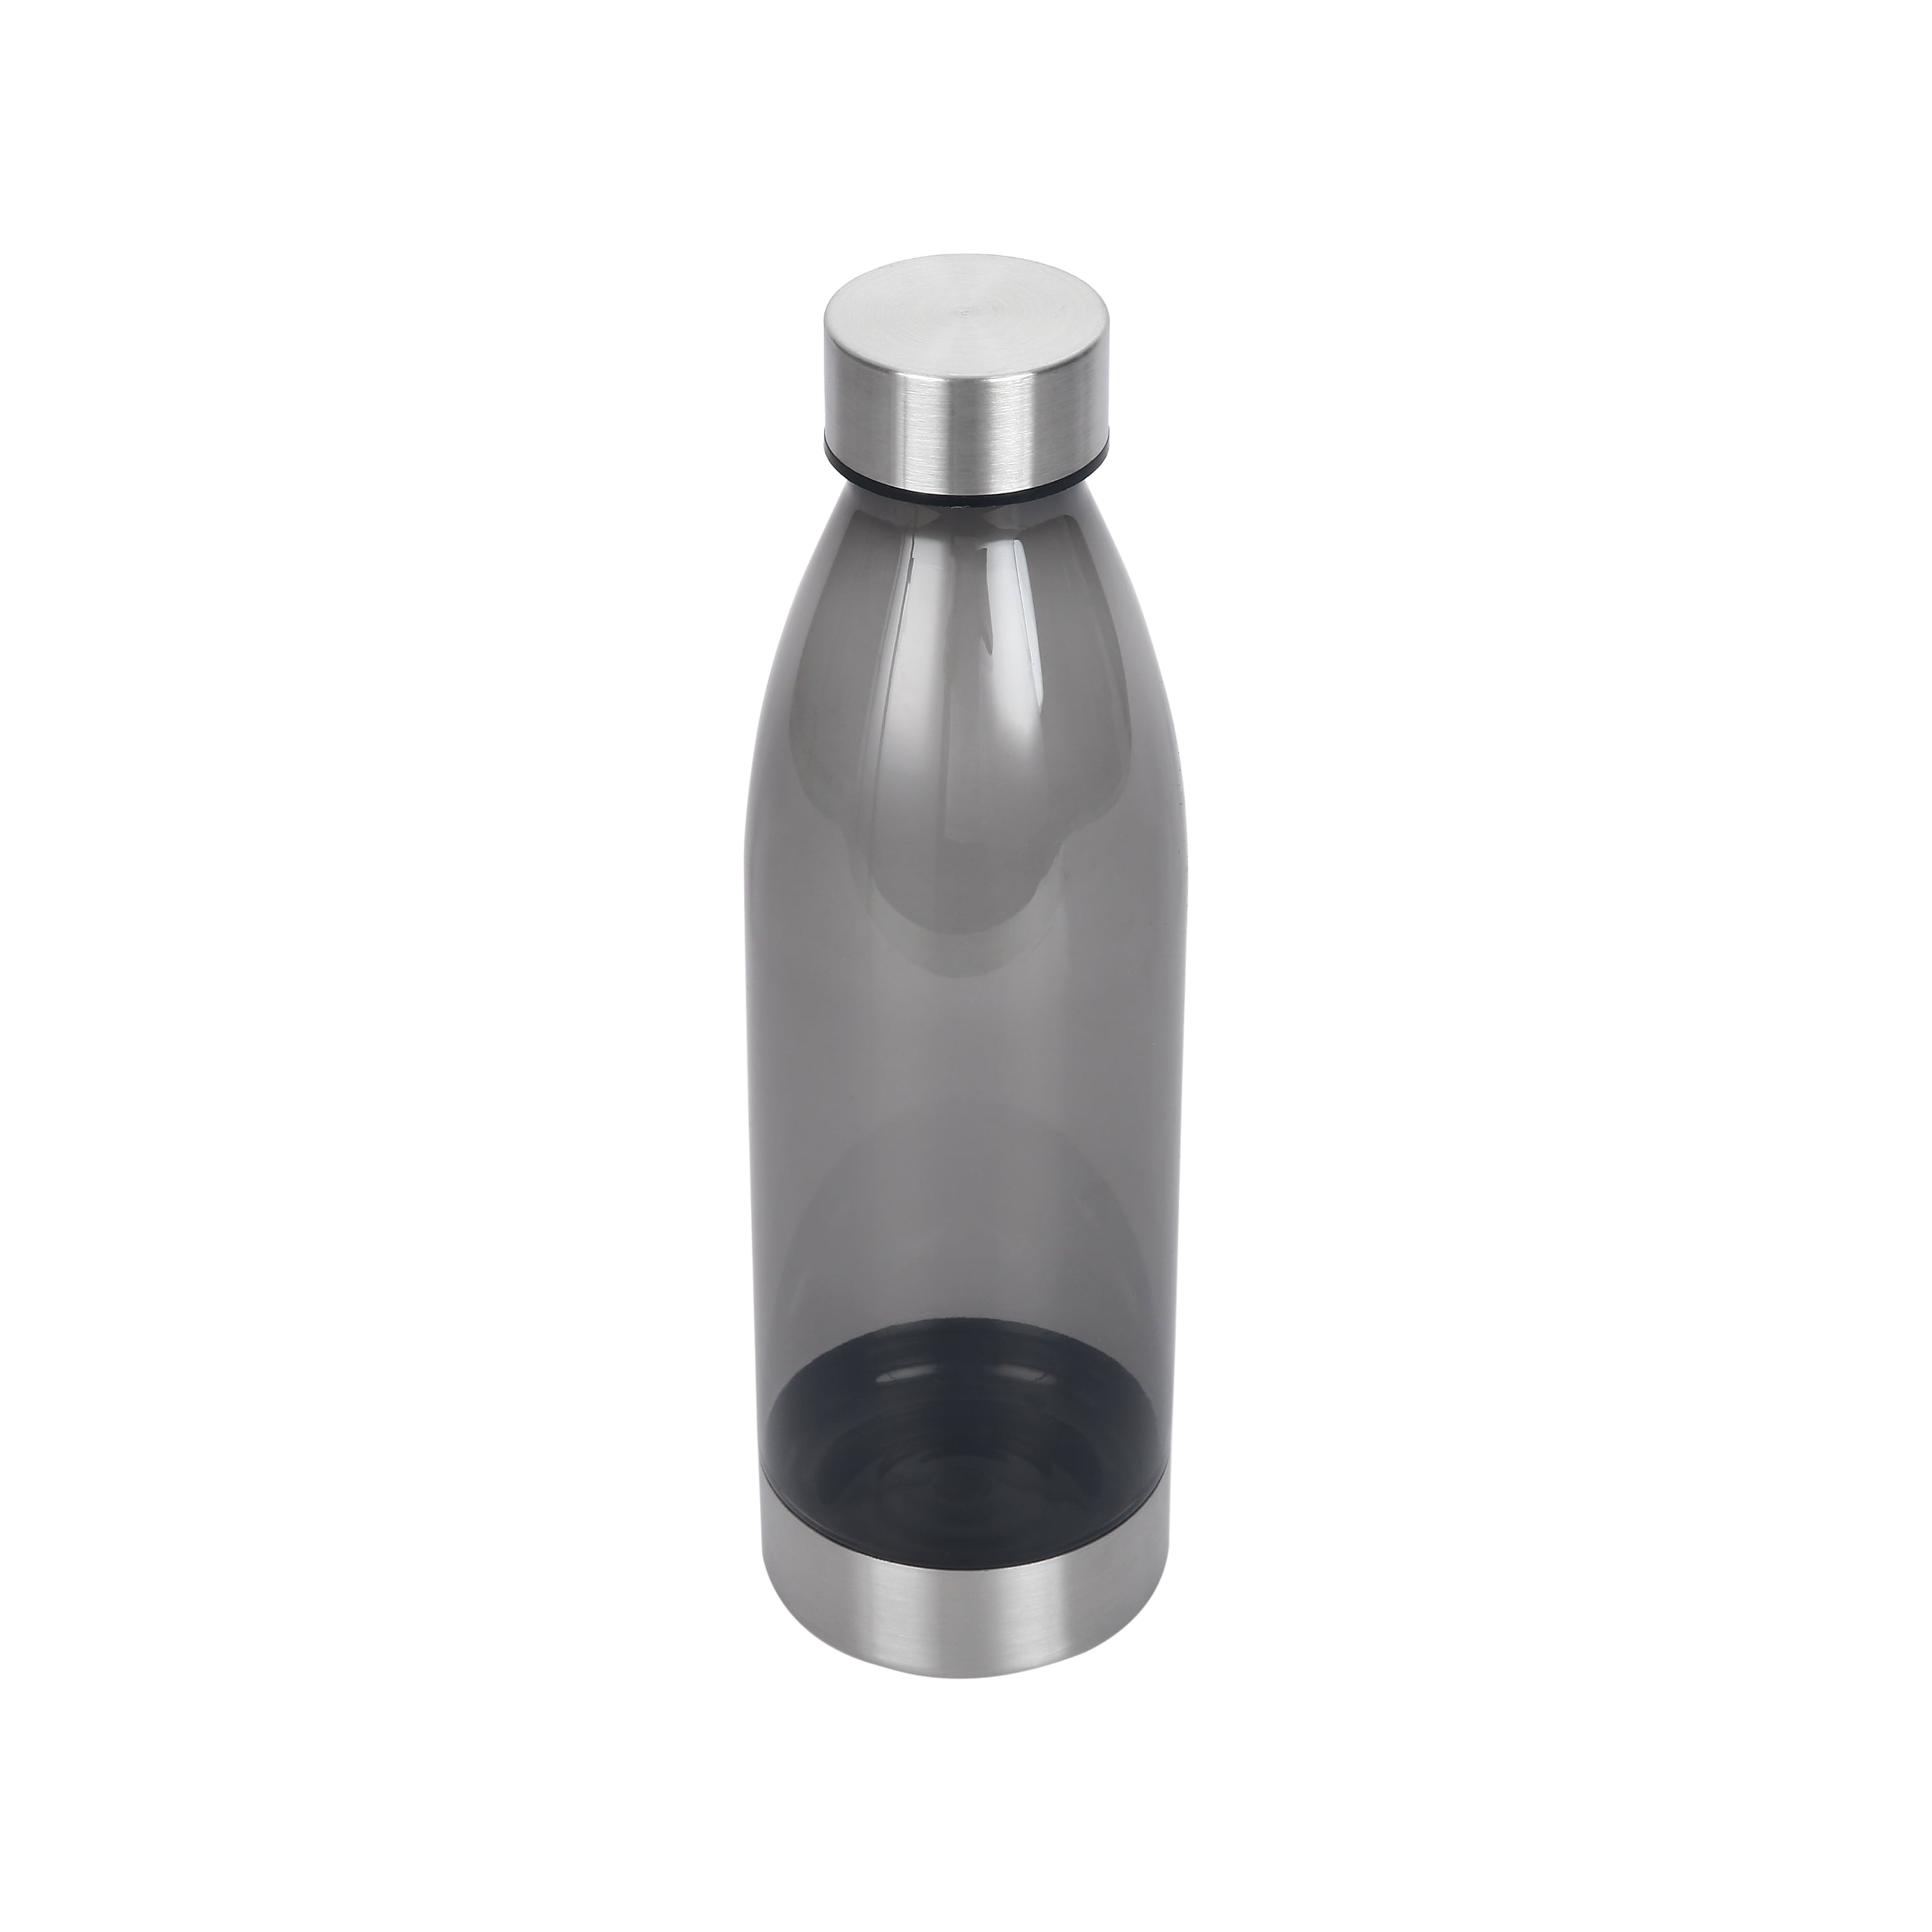 Mainstays 22oz Water Bottle with Stainless Steel Lid and Base - Grey